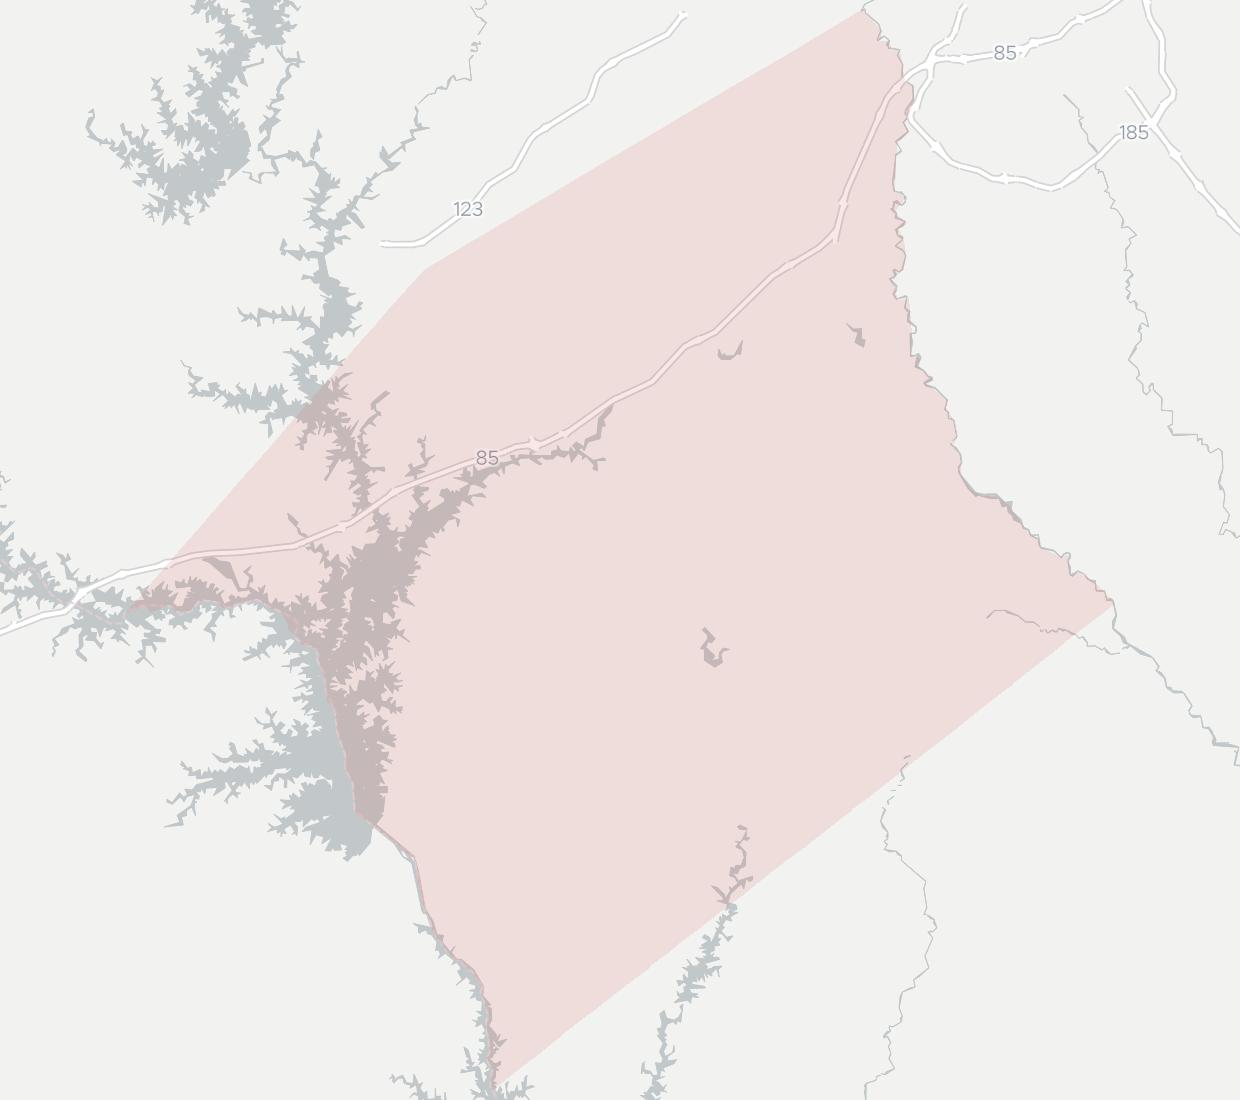 Fiberlink Telecommuncations Availability Map. Click for interactive map.